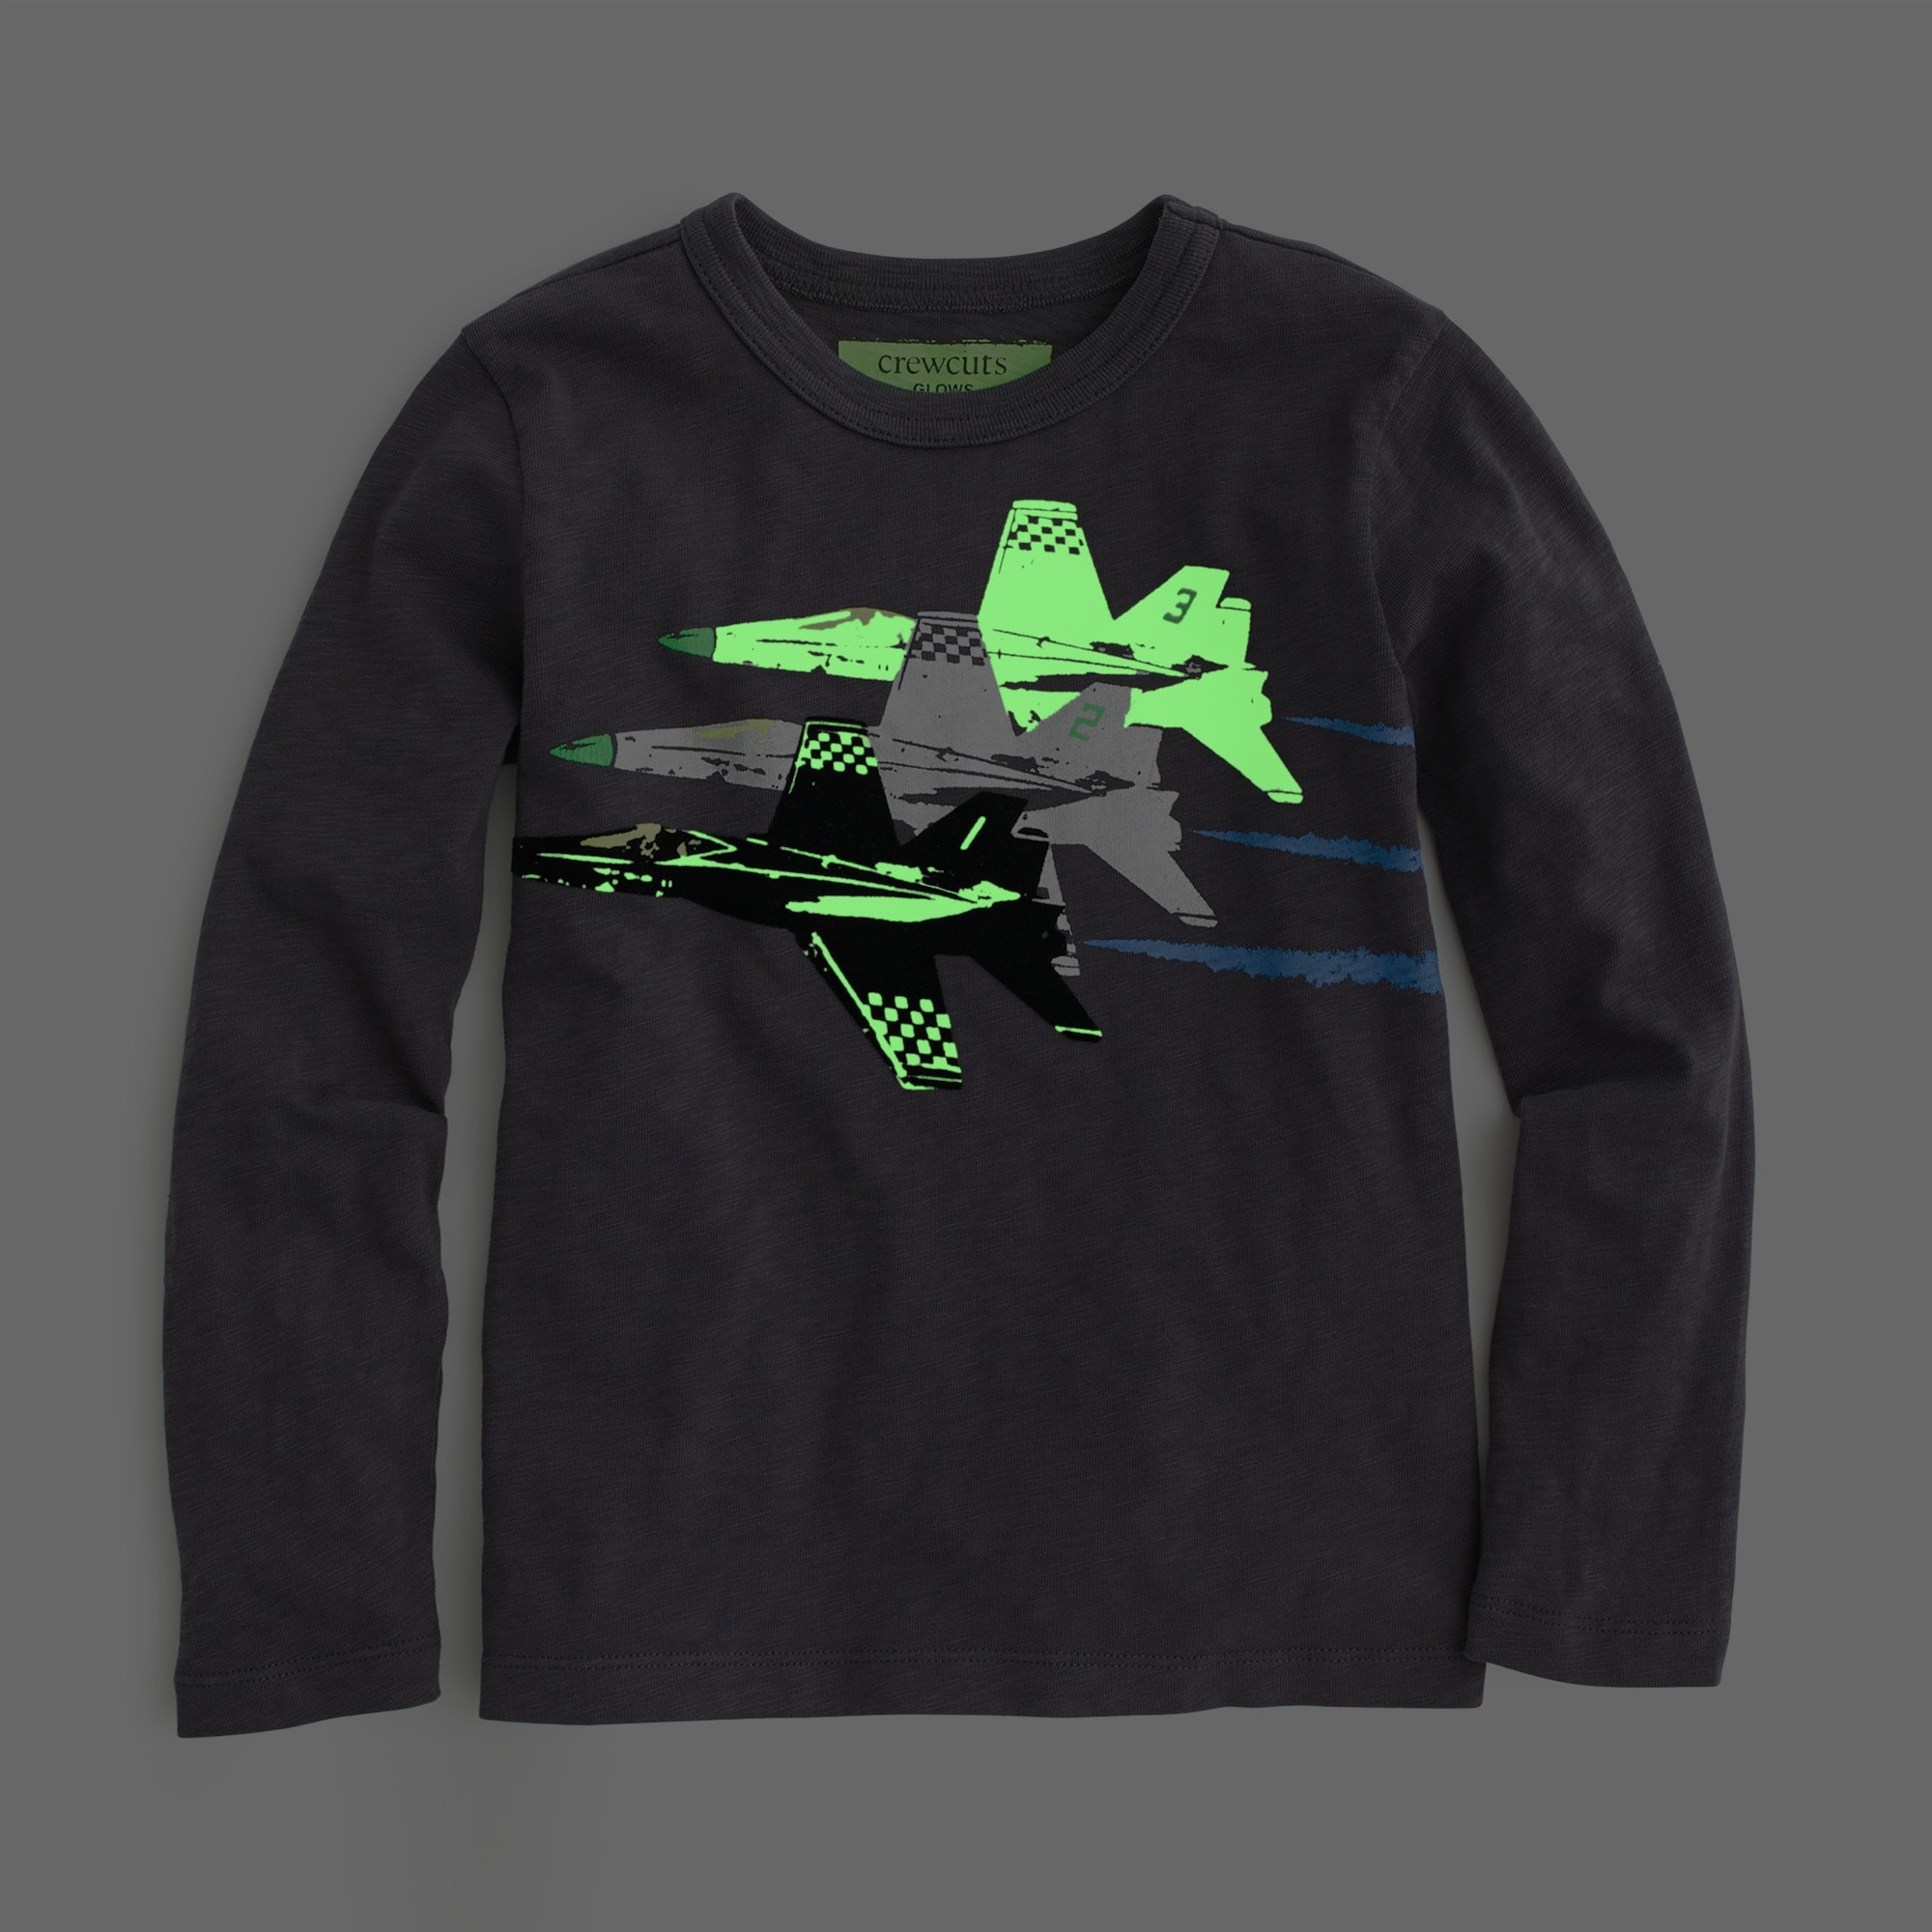 Image 4 for Boys' glow-in-the-dark jets T-shirt